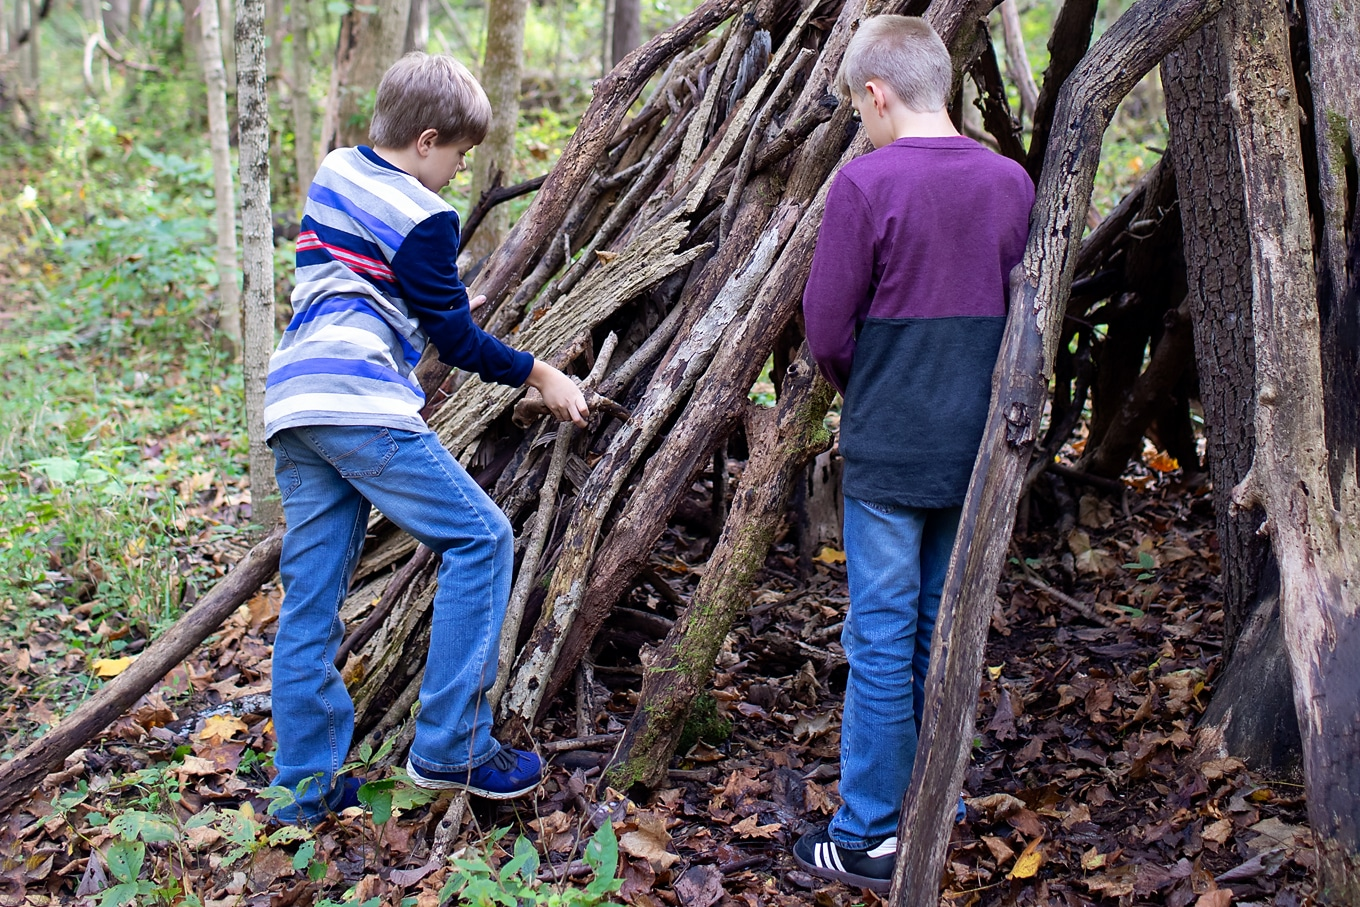 Children Building Forts in Nature